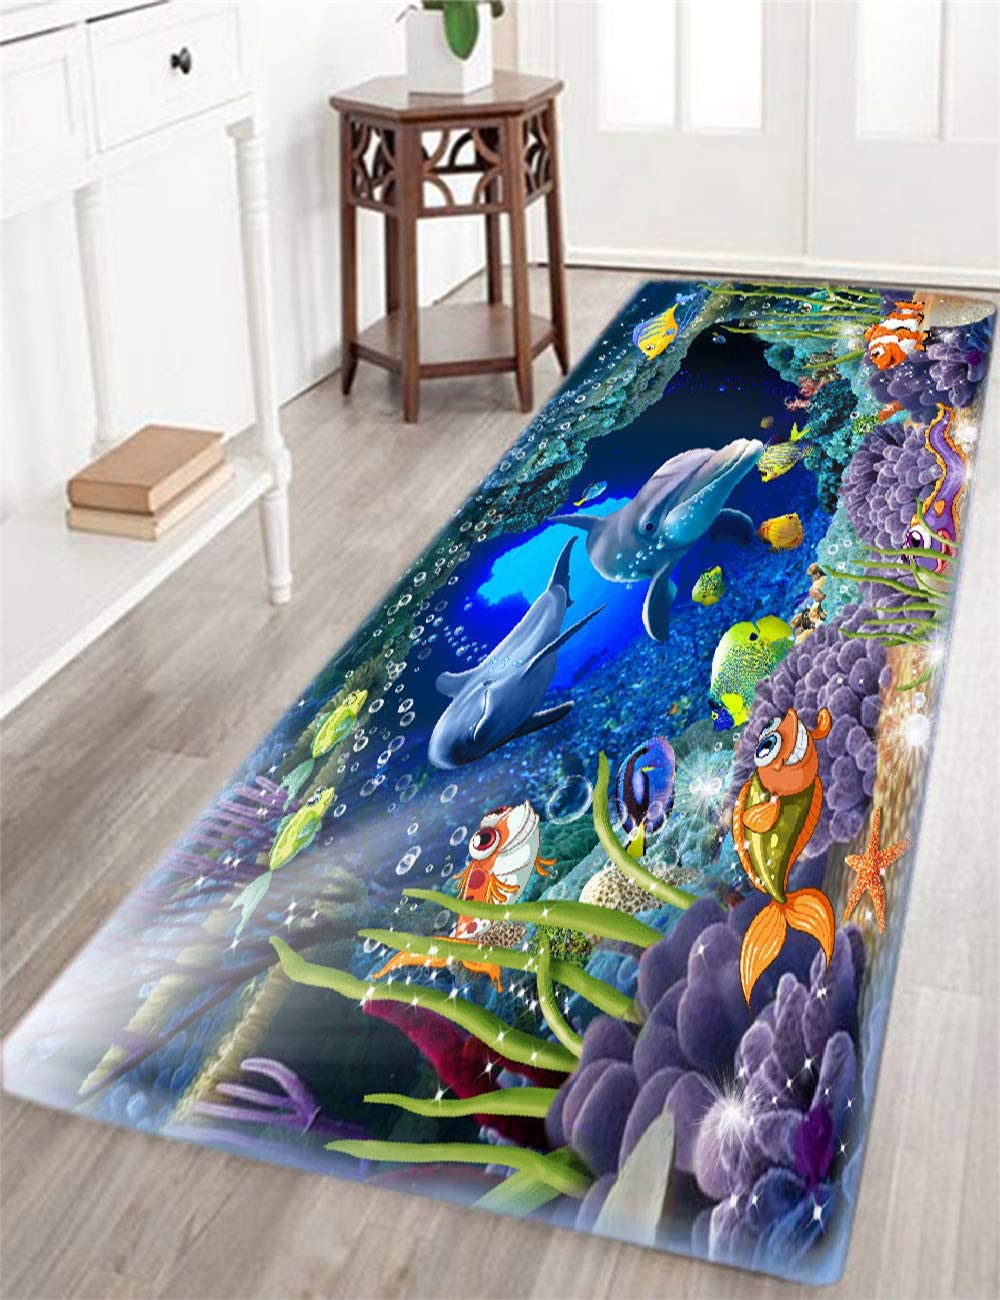 Bathroom Rug Non-Slip Flannel Microfiber Bath Mat Underwater World Dolphin Rug with Water Resistant Rubber Back Anti-Slip for Kitchen and Bathroom